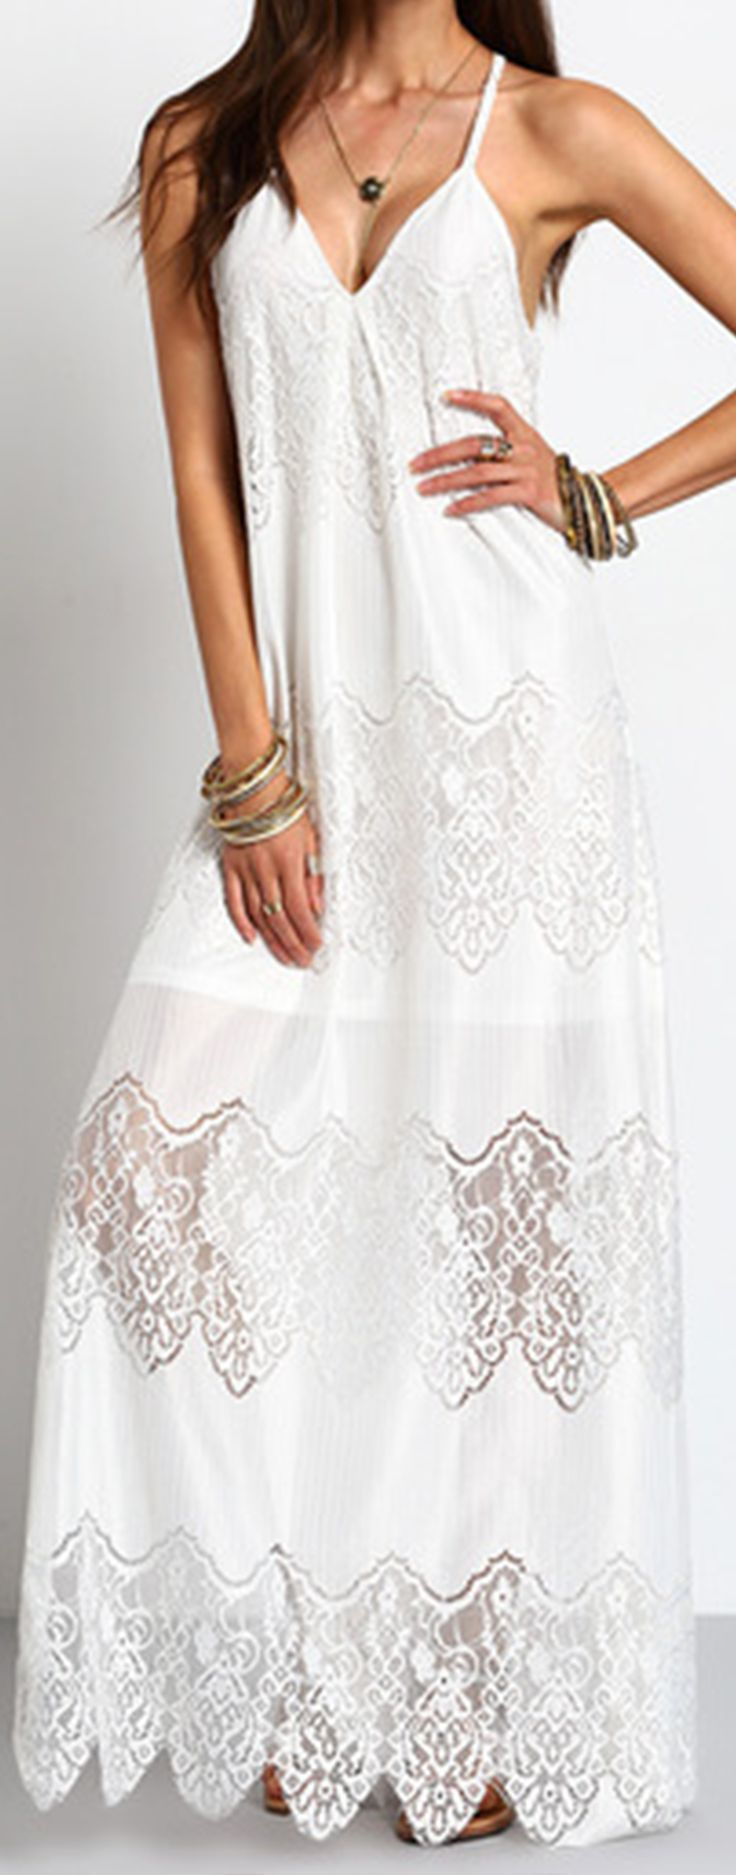 Really love the corchet lace dress this summer. Stunning dress is it! Looks better in real. Cream color & Deep V Neck and Split Slip is perfectly combined. Love!